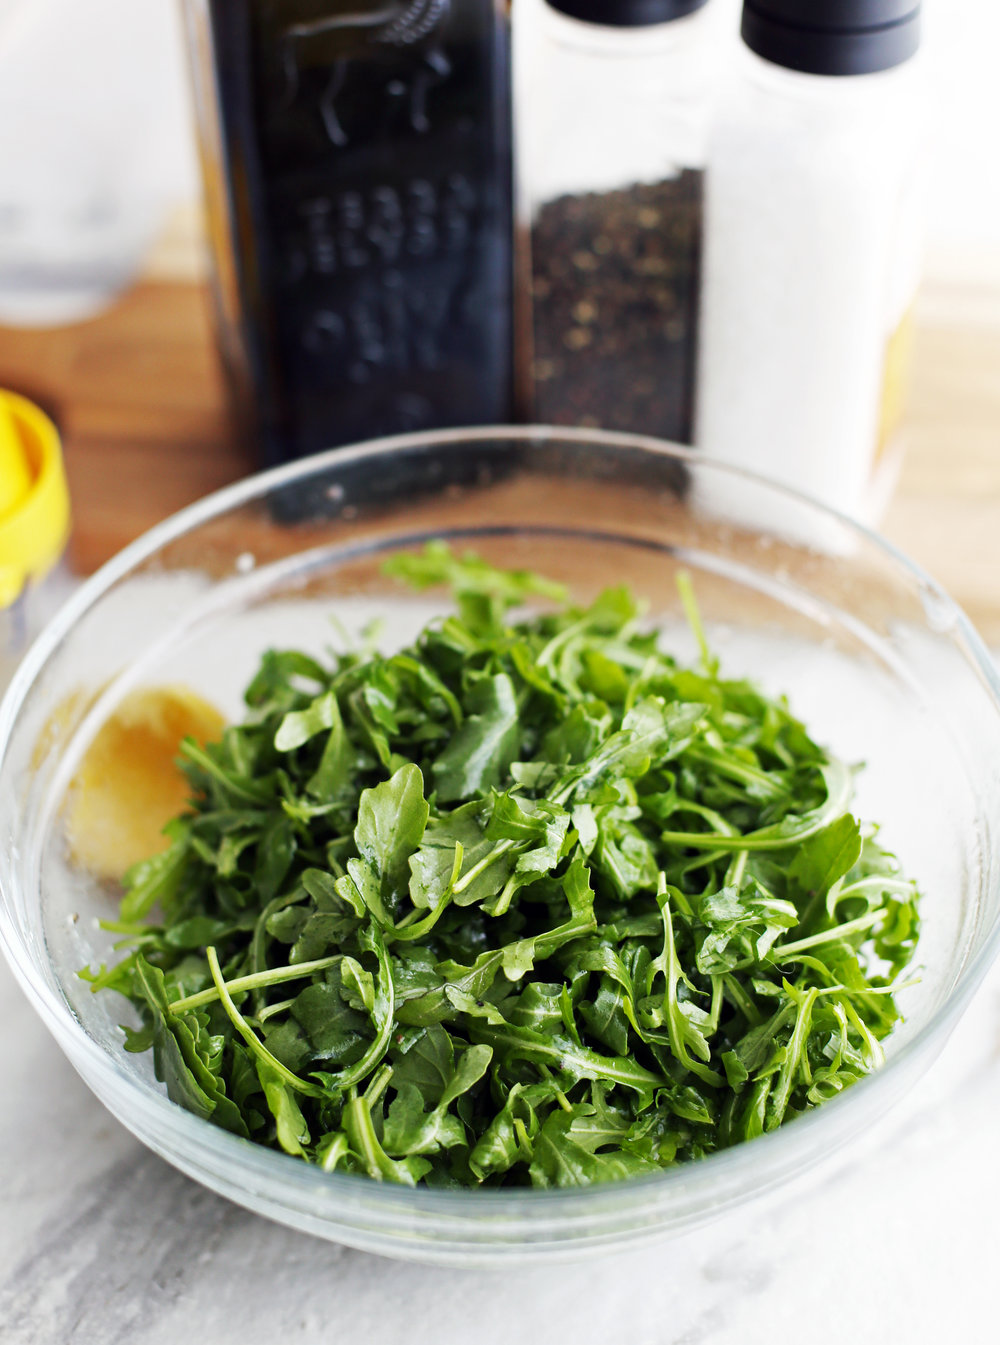 Baby arugula that has been tossed with olive oil, lemon juice, salt, and pepper in a glass bowl.